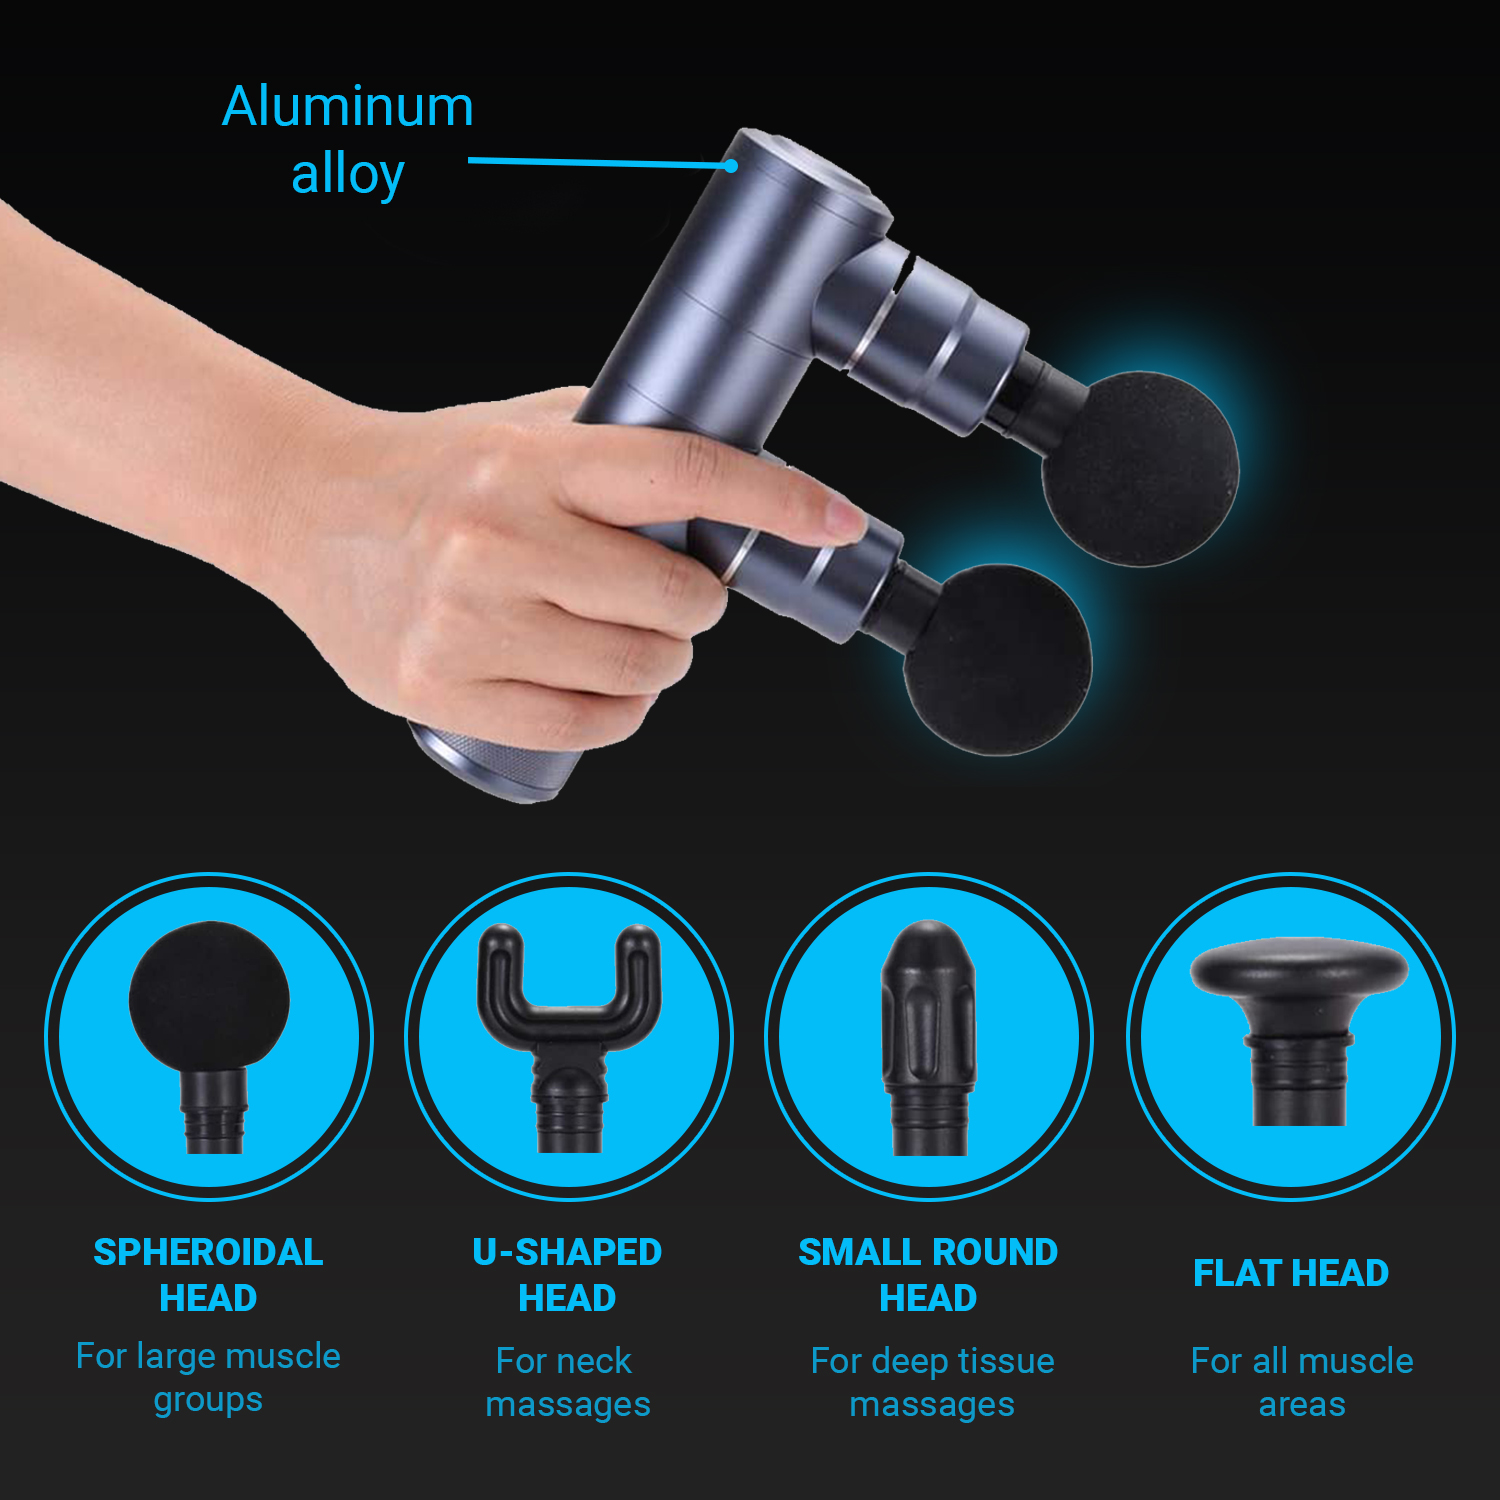 Double Head Percussion Massage Gun by Body Drummer Double - Whisper Quiet - Deep Tissue Pain Relief with 4 Massage Heads High RPM vibrational Relaxation - Rechargeable Battery